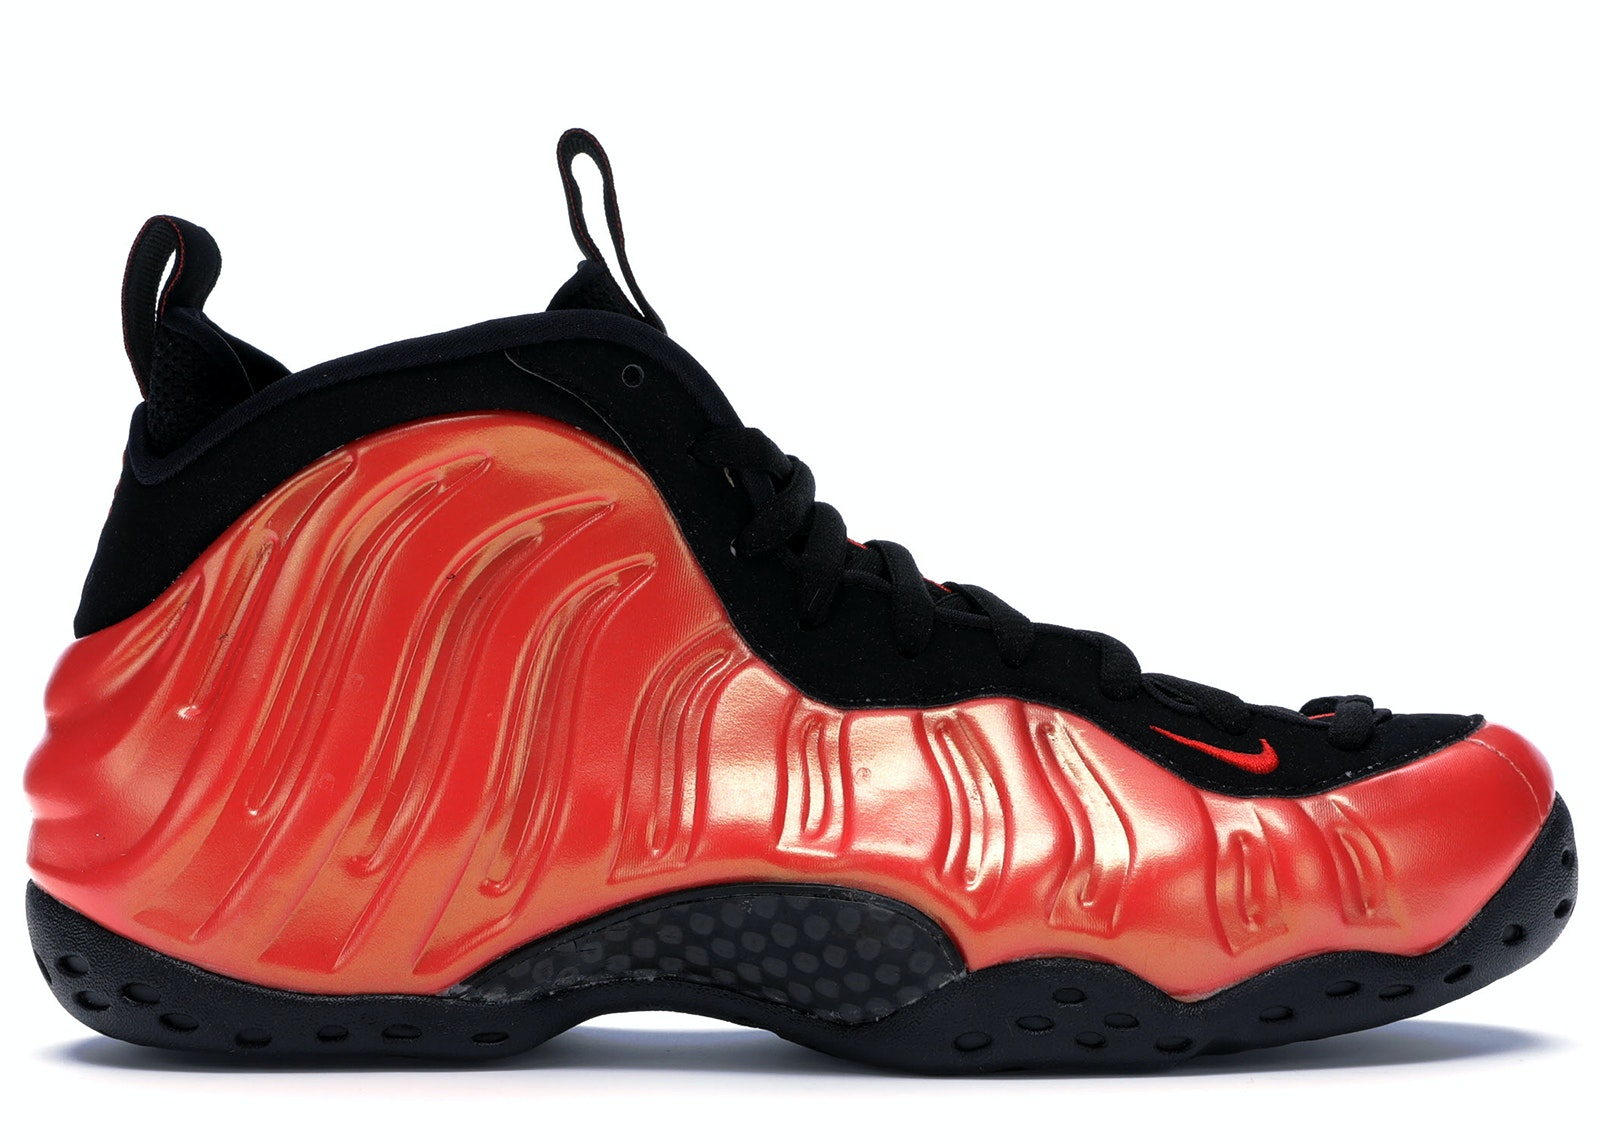 Nike Air Foamposite One Optic Yellow Release Date Nike ...